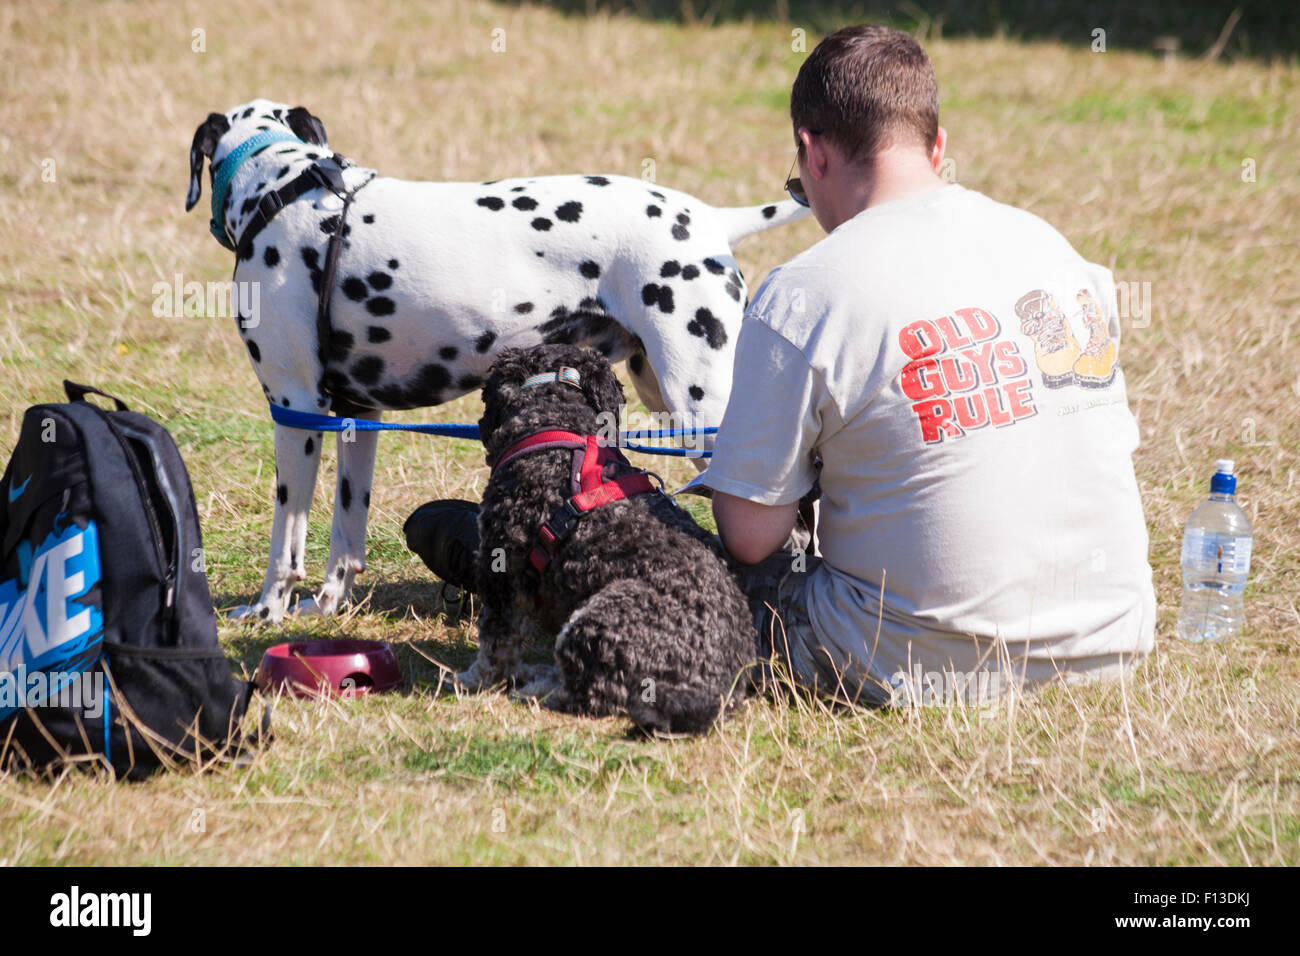 Man wearing Old Guys Rule t-shirt with dogs at the Ellingham & Ringwood Agricultural Society Annual Show at - Stock Image